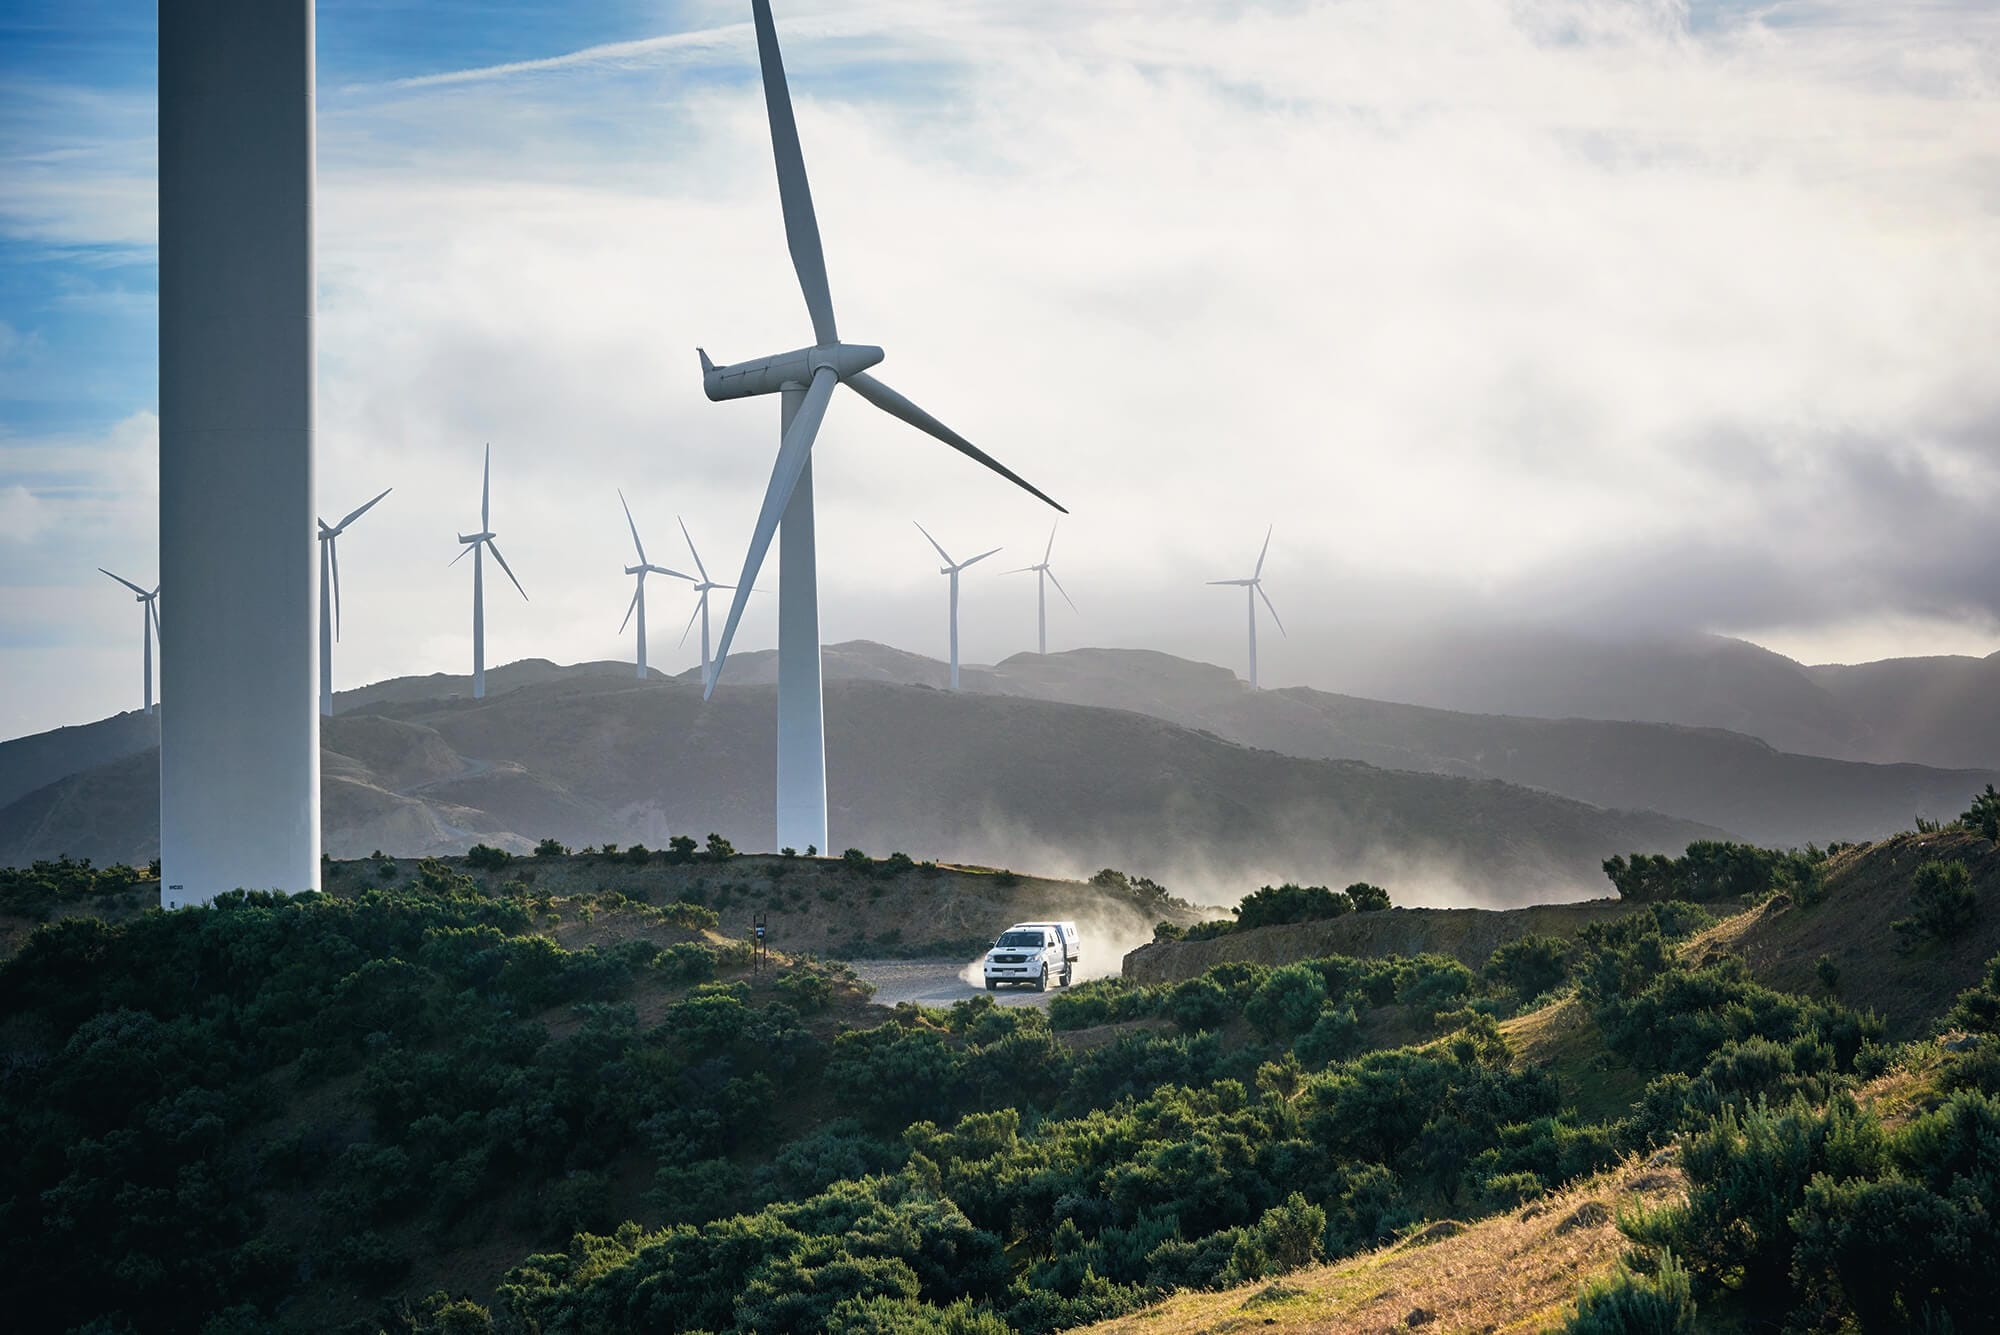 It's high time to rethink low carbon innovation policy in New Zealand